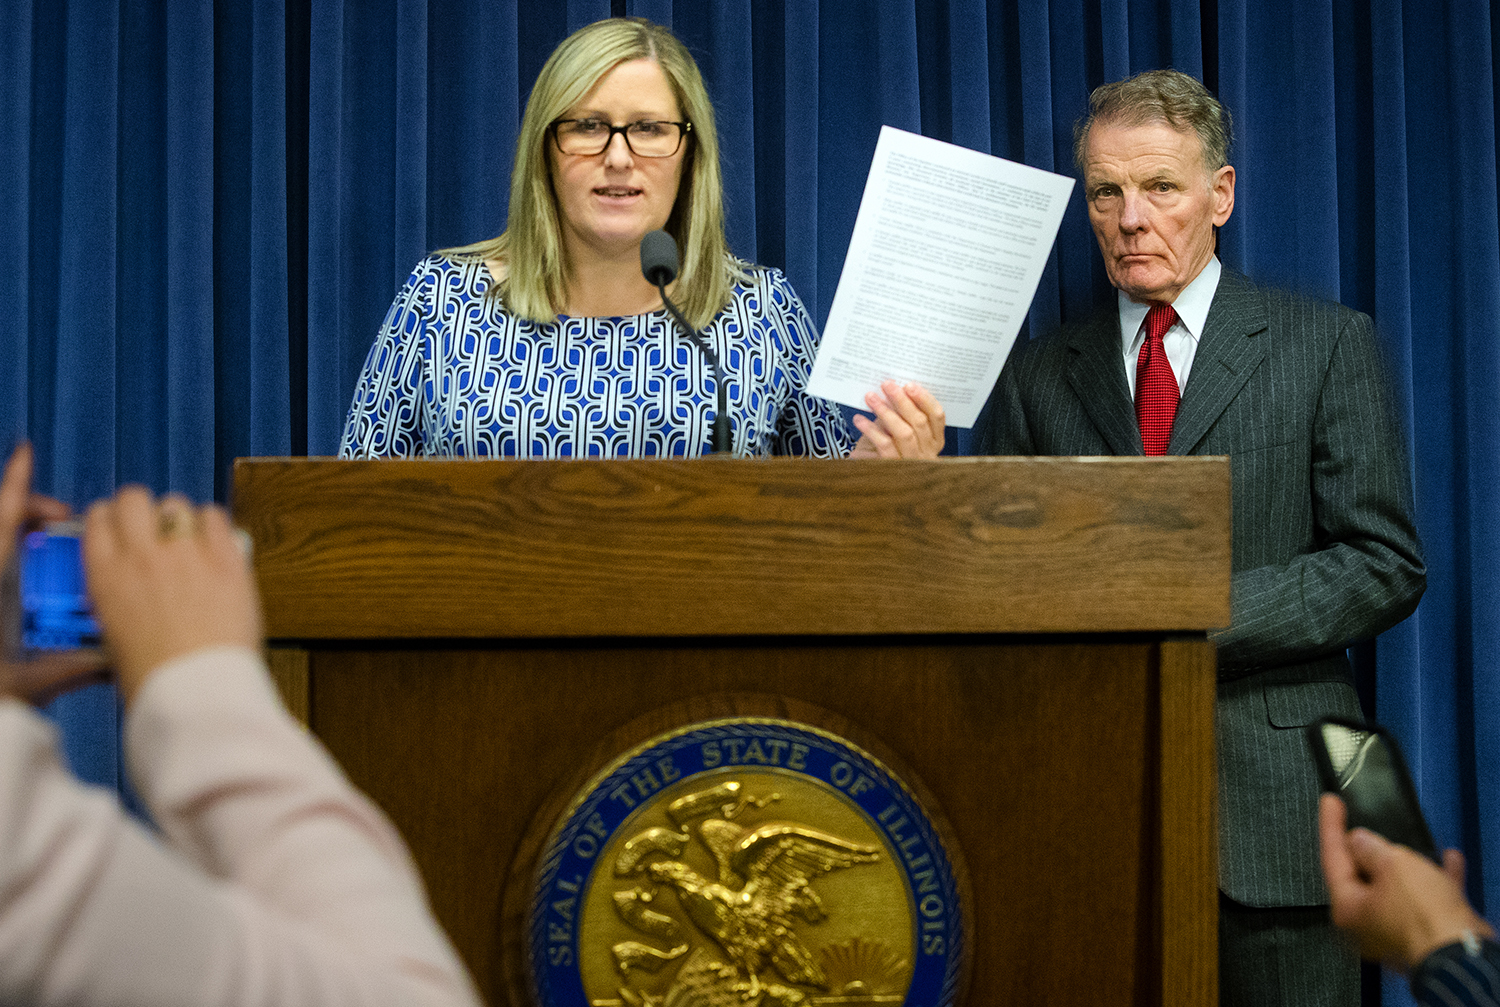 Illinois House Speaker Michael Madigan listens as attorney Heather Wier Vaught  discusses a list of sexual harassment complaints in Speaker Madigan's office in the last five years that was distributed to reporters Tuesday, Feb. 27, 2018. [Ted Schurter/The State Journal-Register]